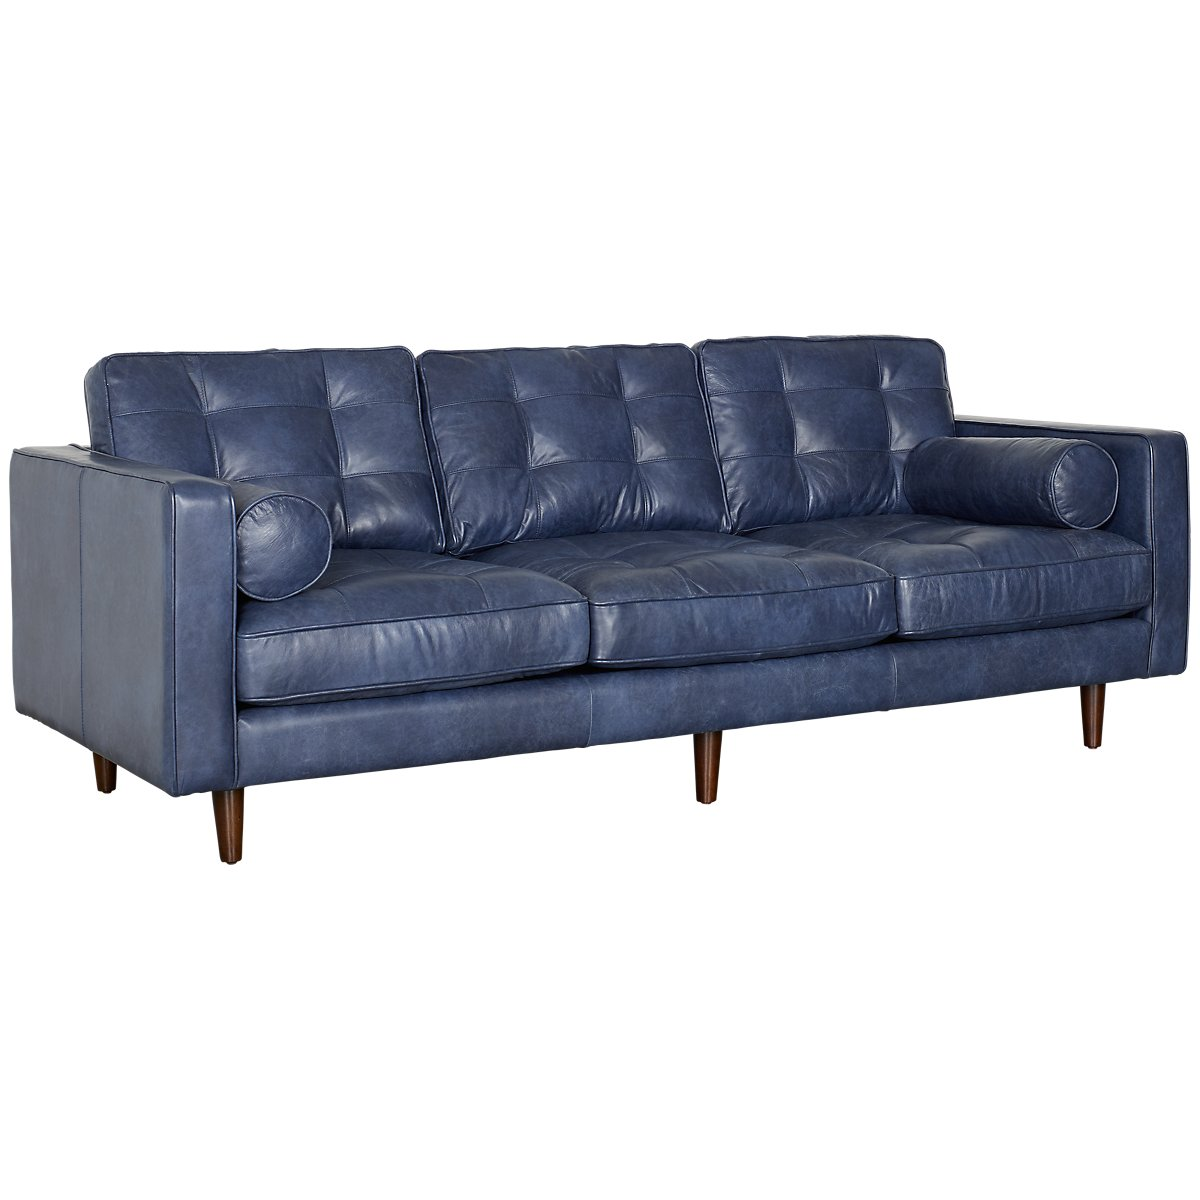 Encino Dark Blue Leather Sofa